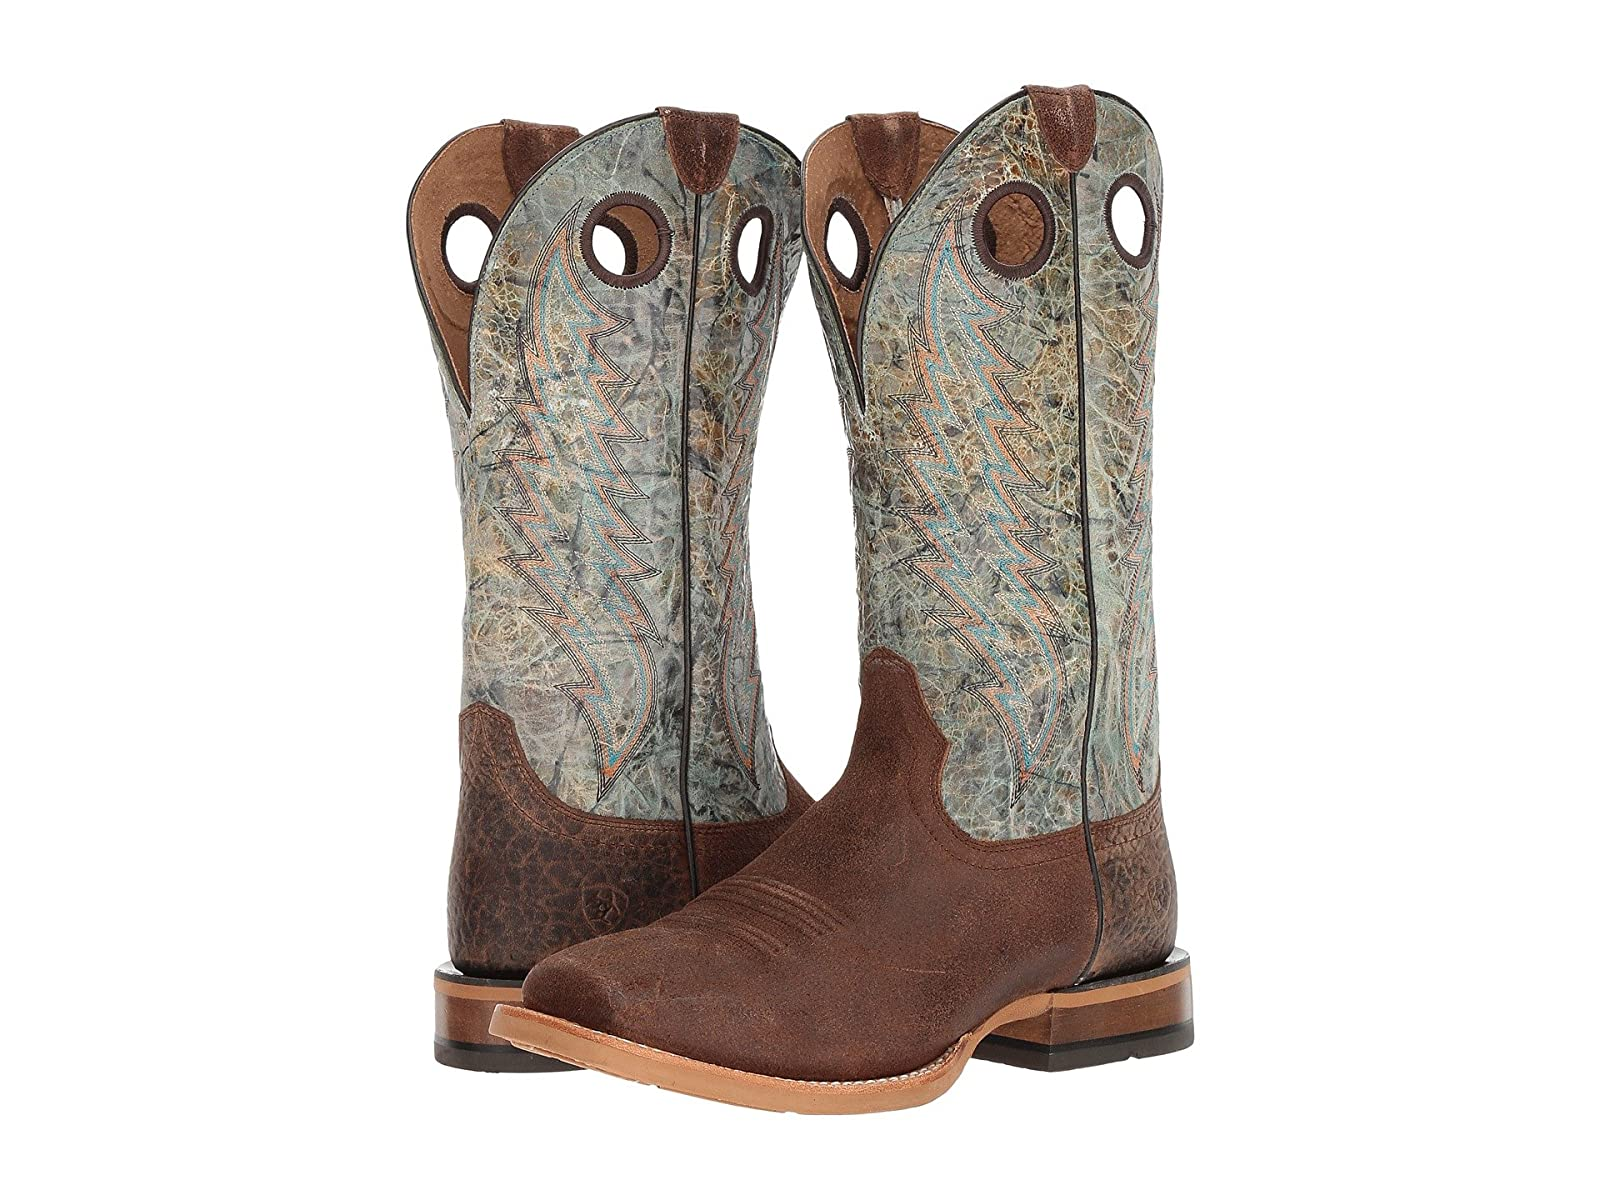 Ariat Branding PenSelling fashionable and eye-catching shoes